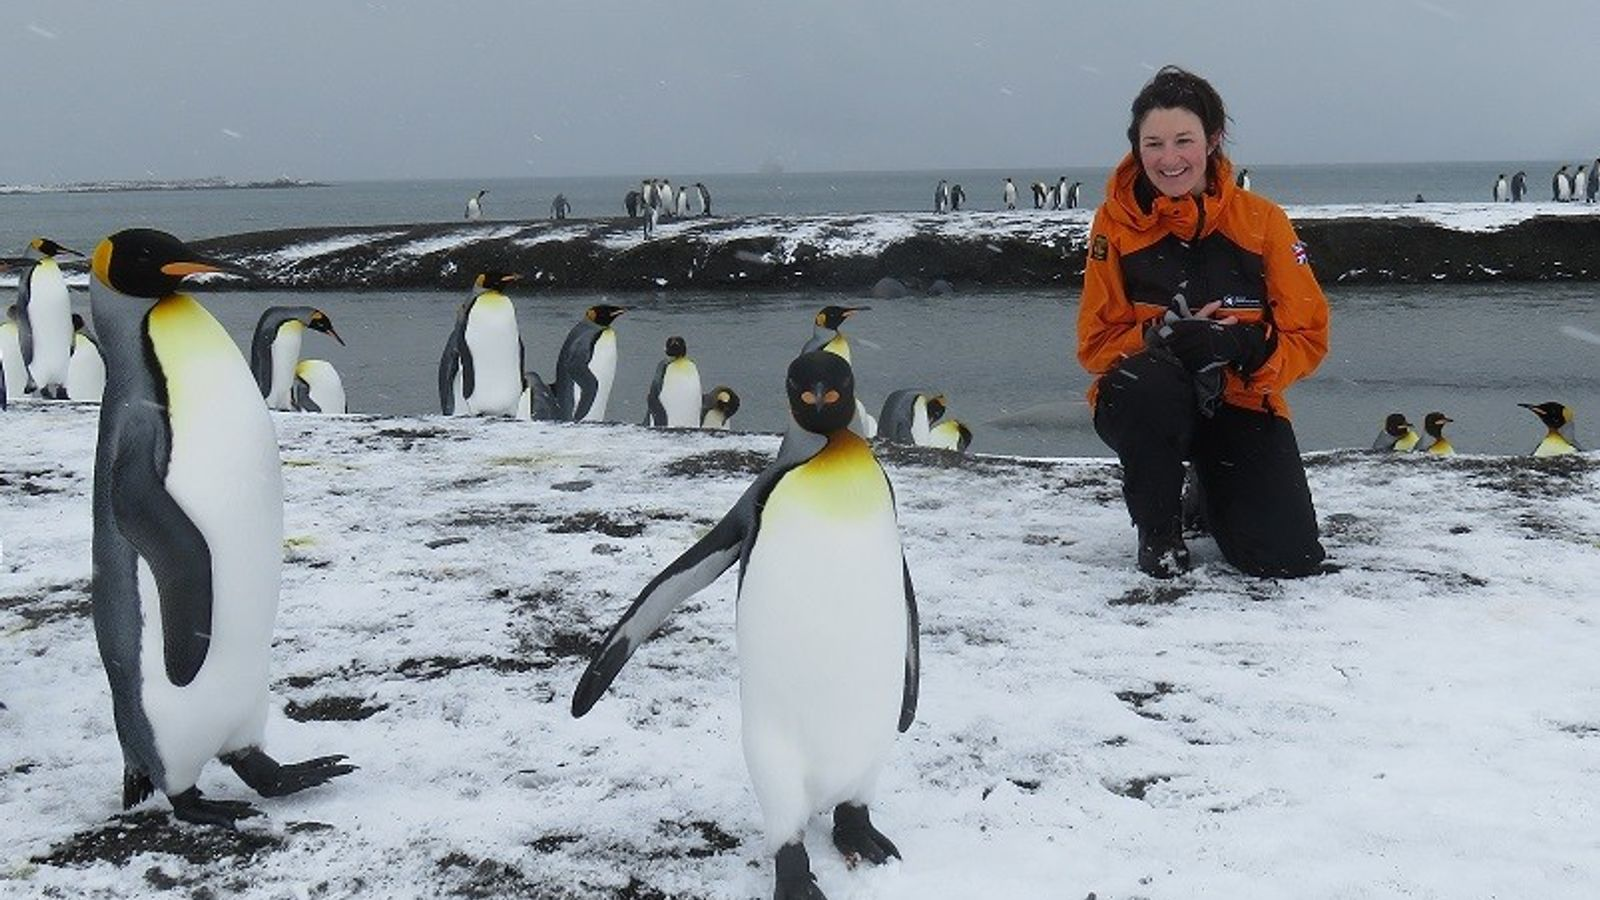 National Geographic Explorer Liz Thomas of the British Antarctic Survey is hosting this special Explorer Live ...